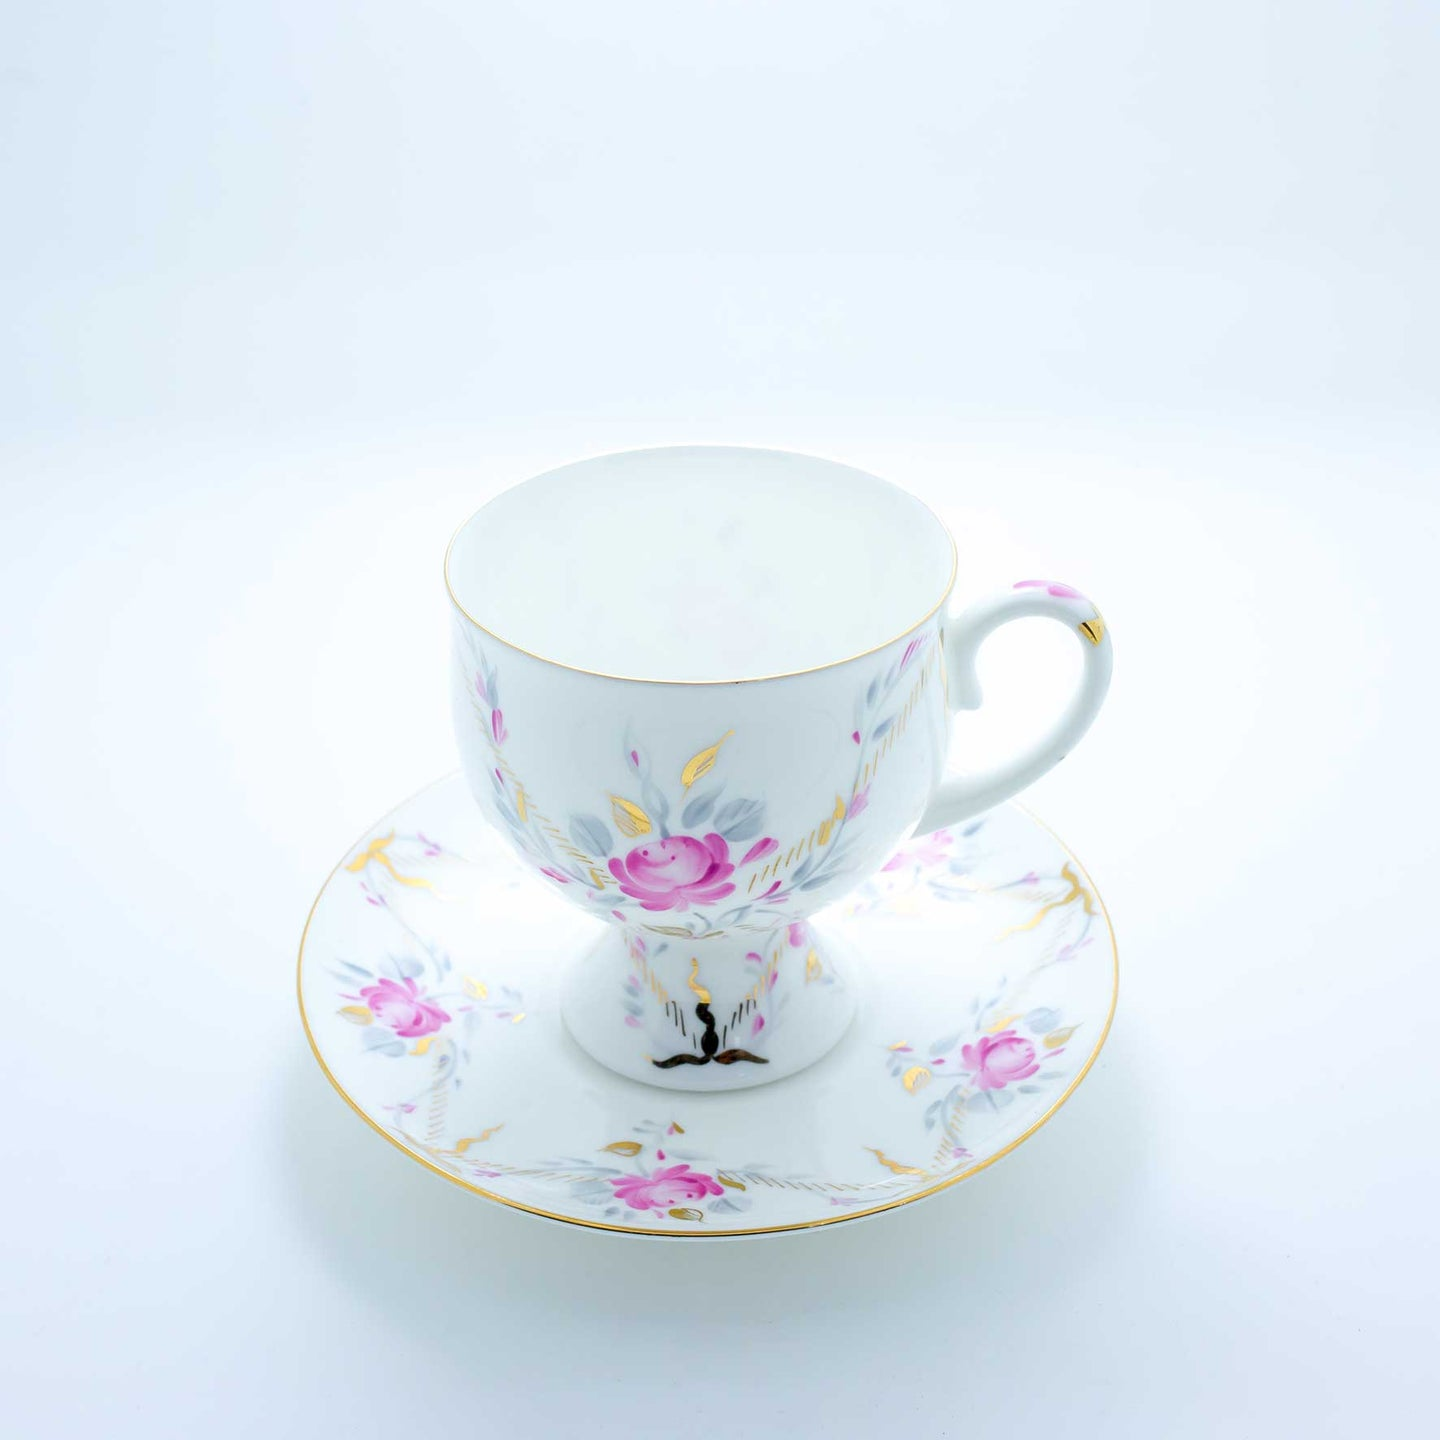 Refresh Moment Imperial Porcelain St. Petersburg 1744 Pink Bloom Teacup and Saucer